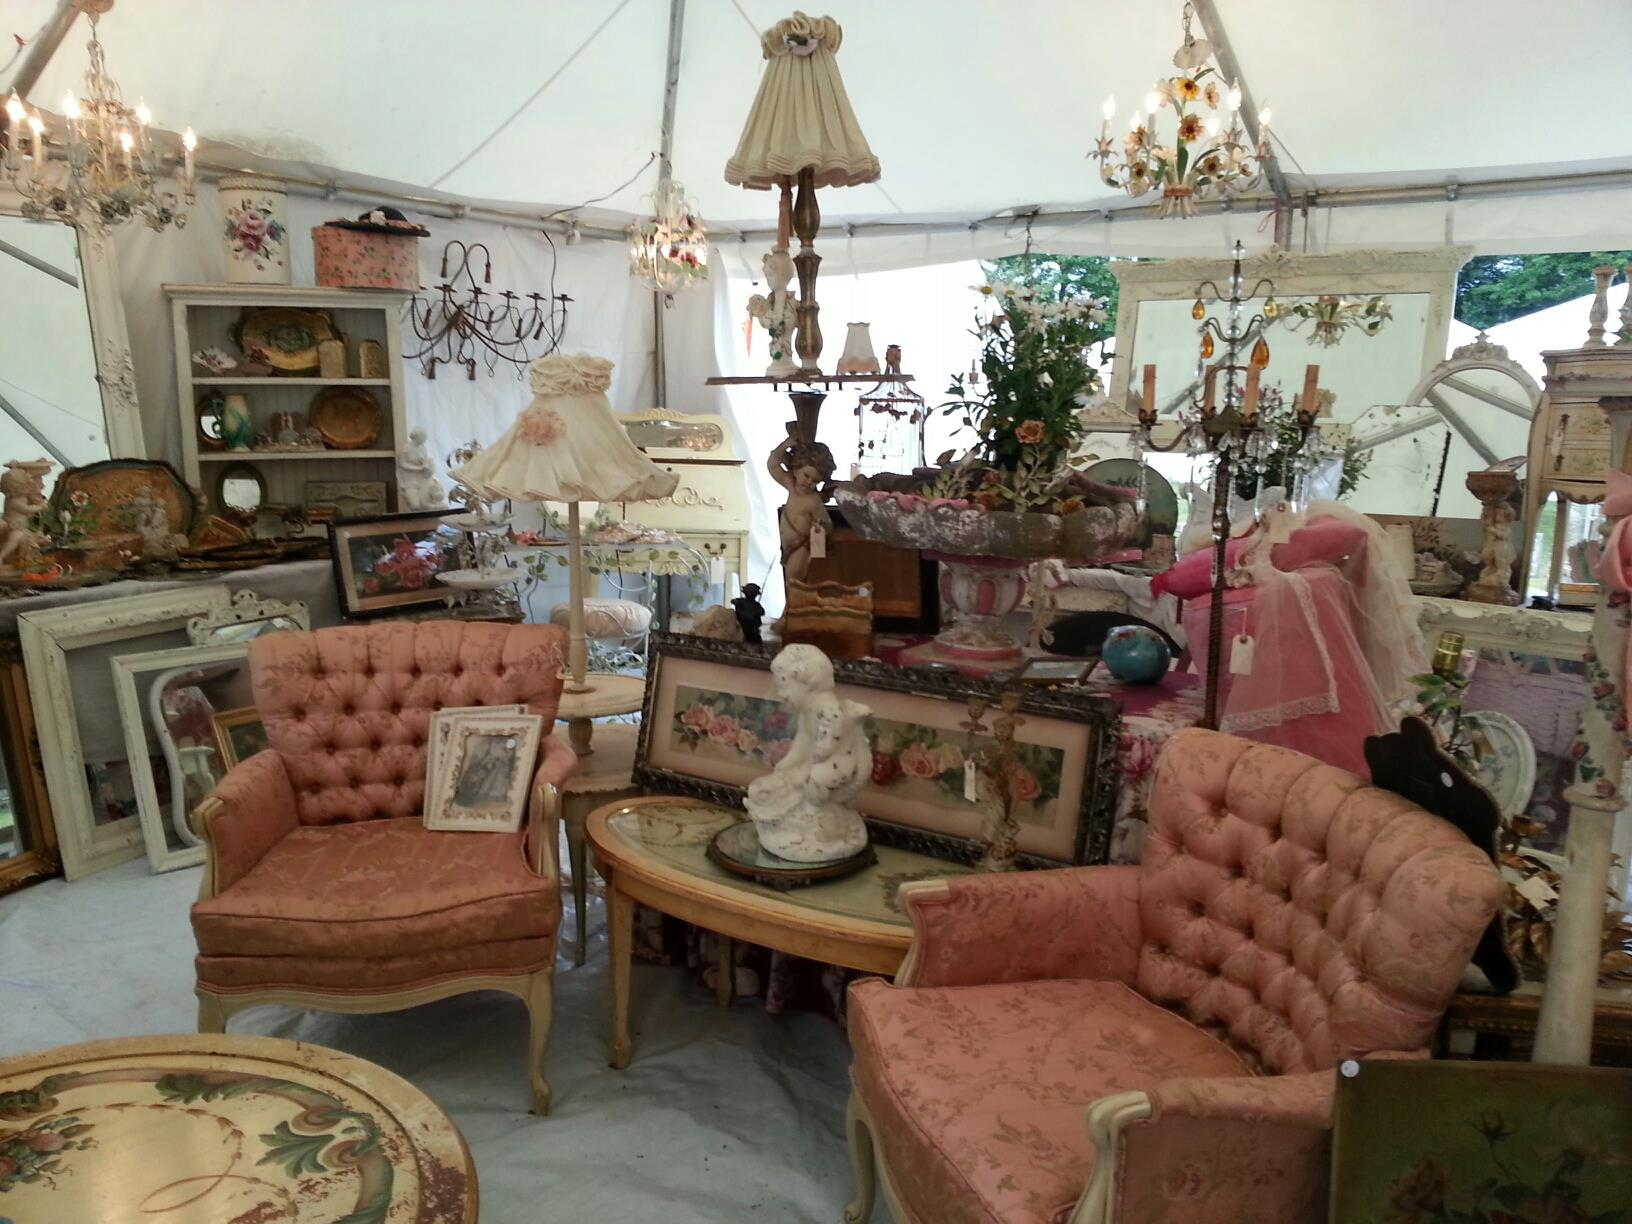 inside-tent-at-an-antique-fair